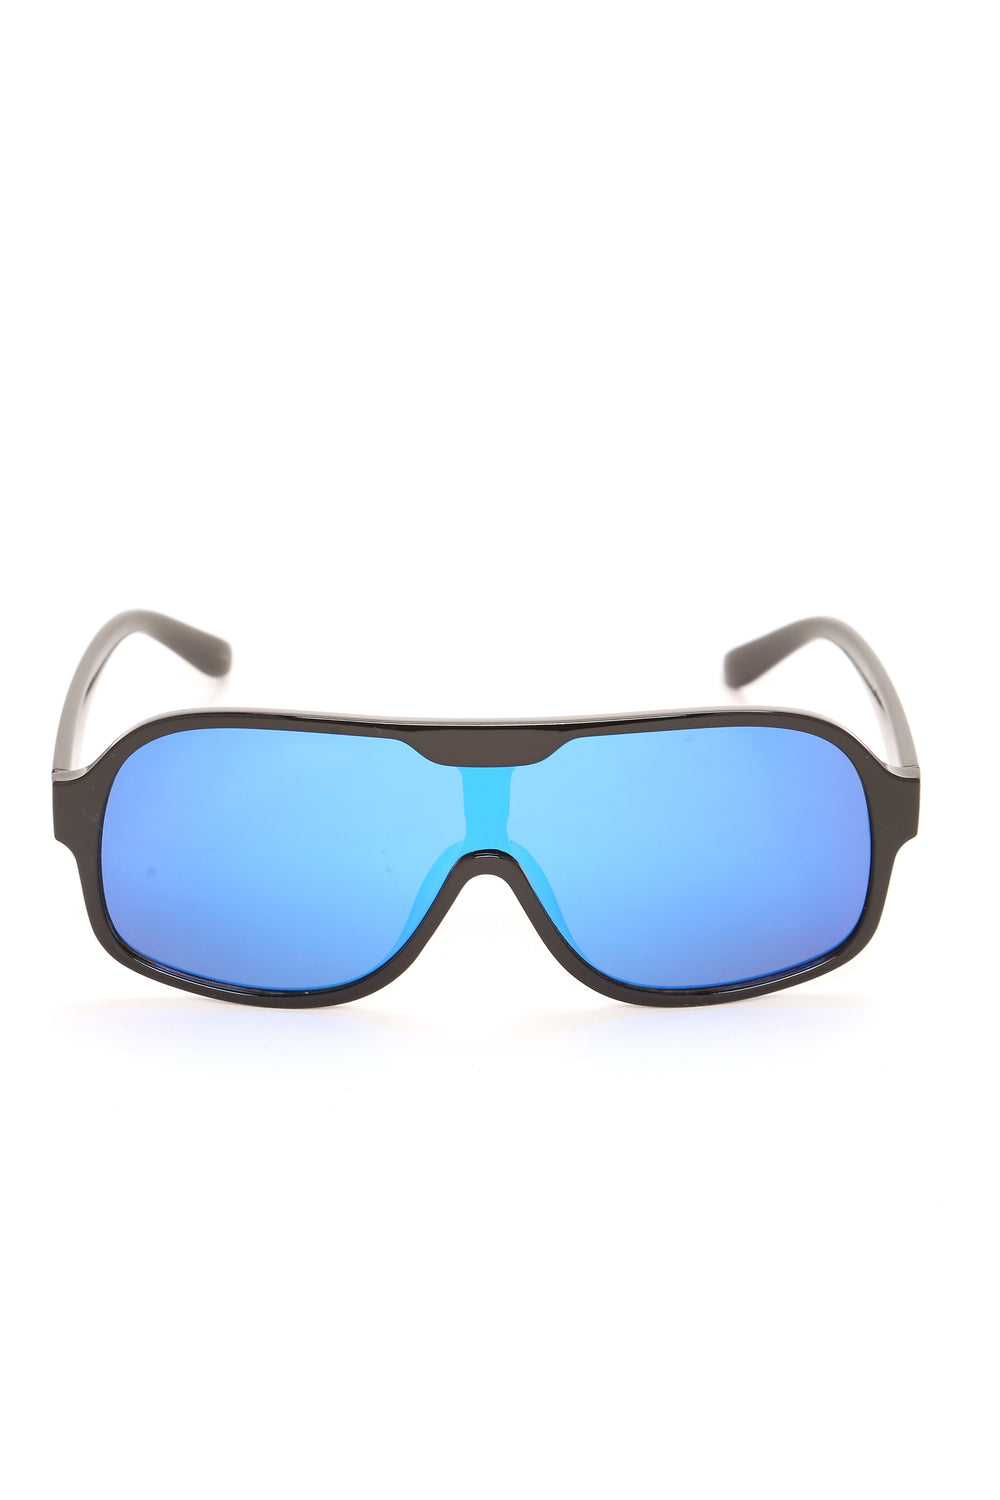 Sway This Way Sunglasses - Blue